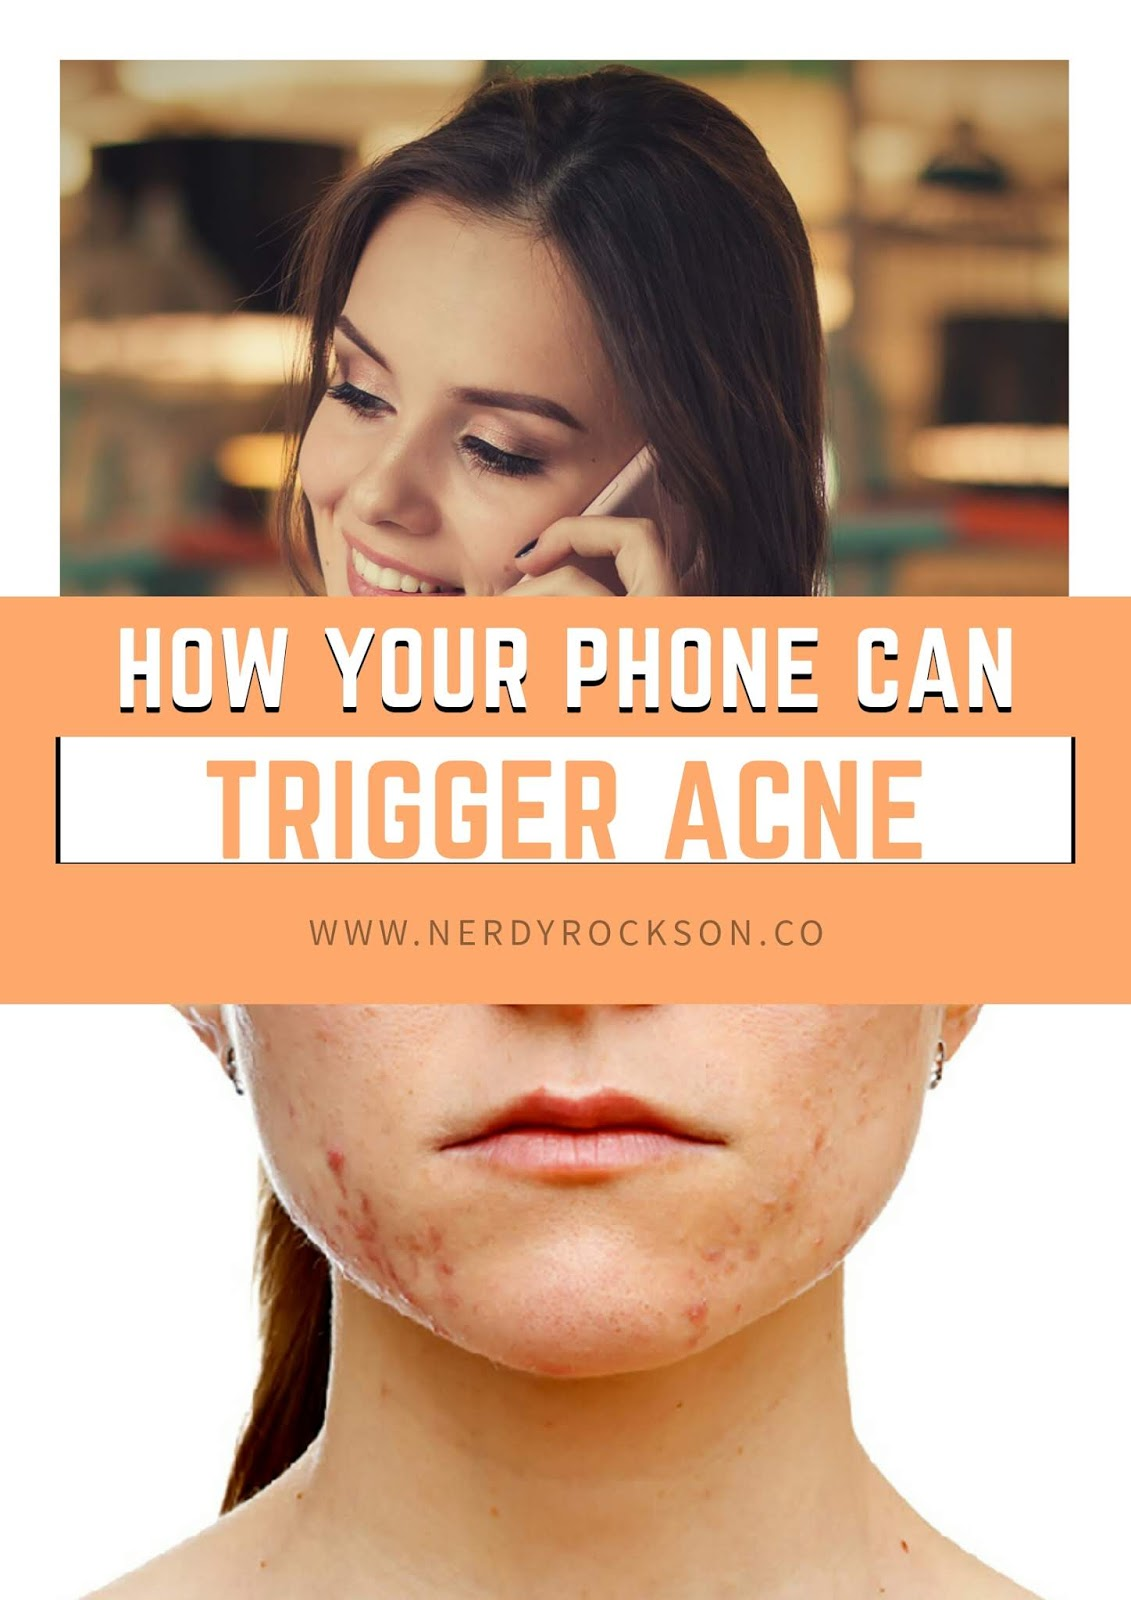 How Your Phone Can Trigger Acne